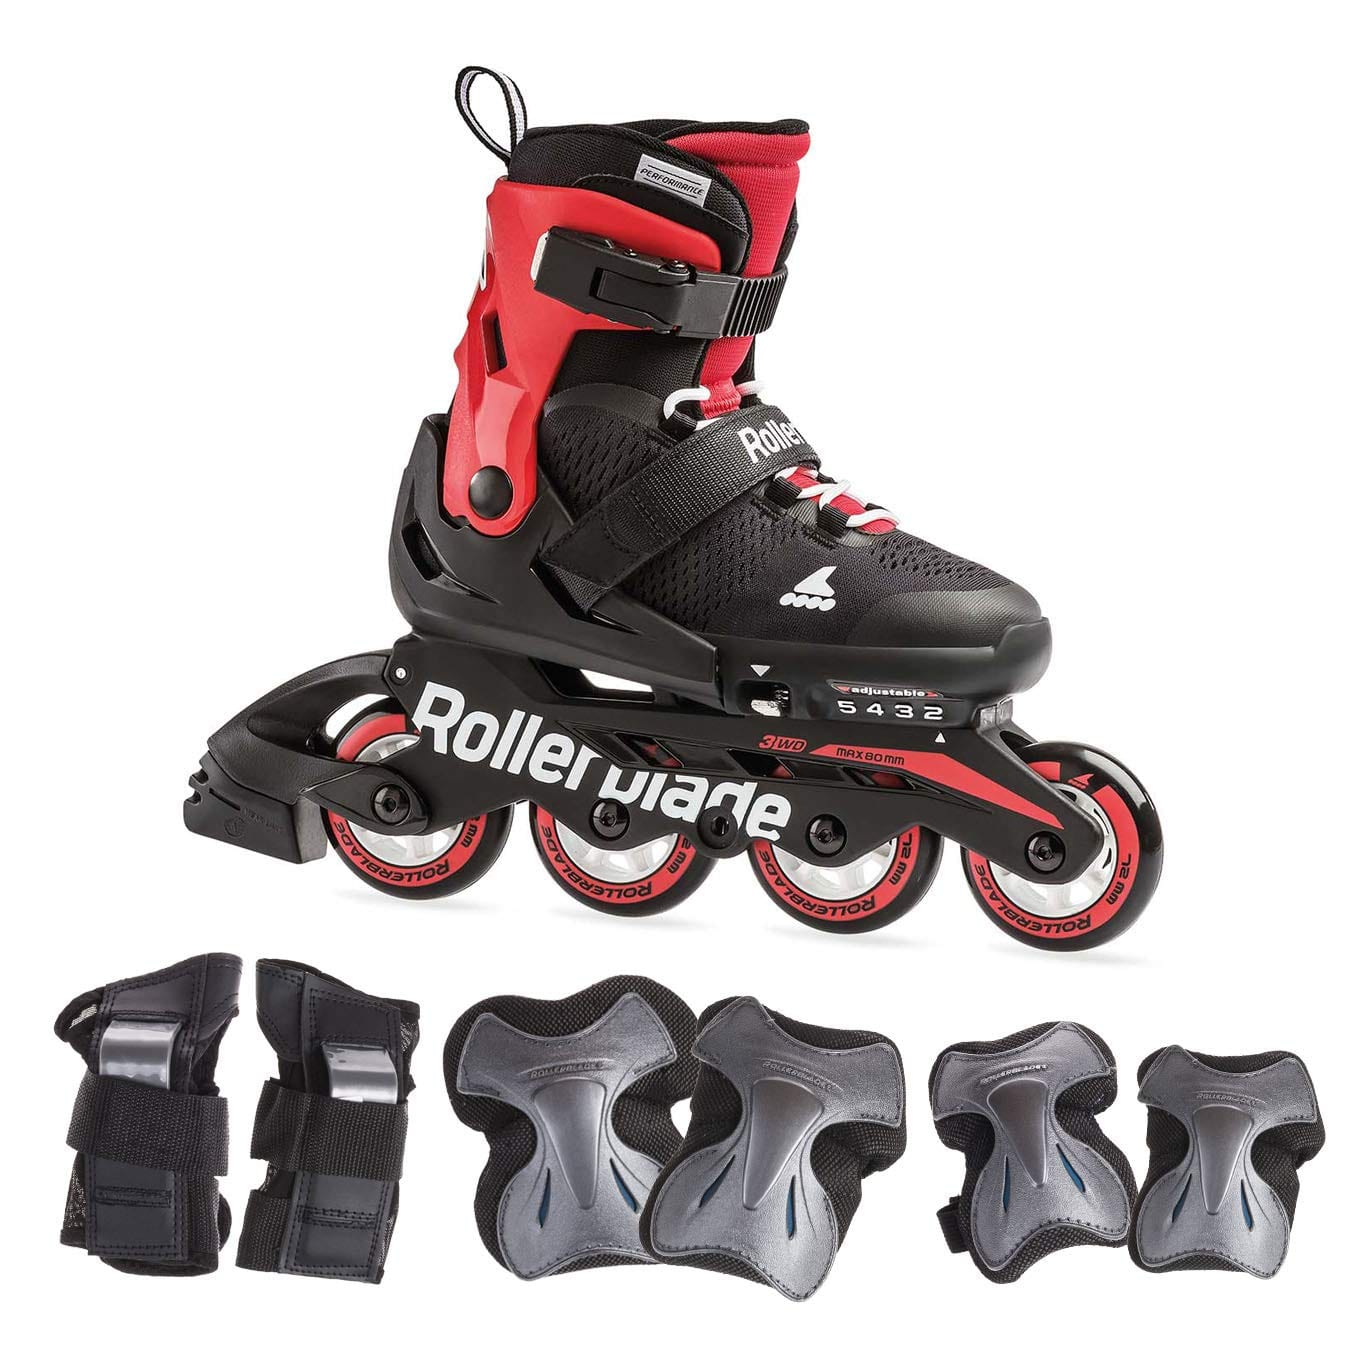 20% off Rollerblade Microblade Kids Adjustable size skate with protective gear $95.99